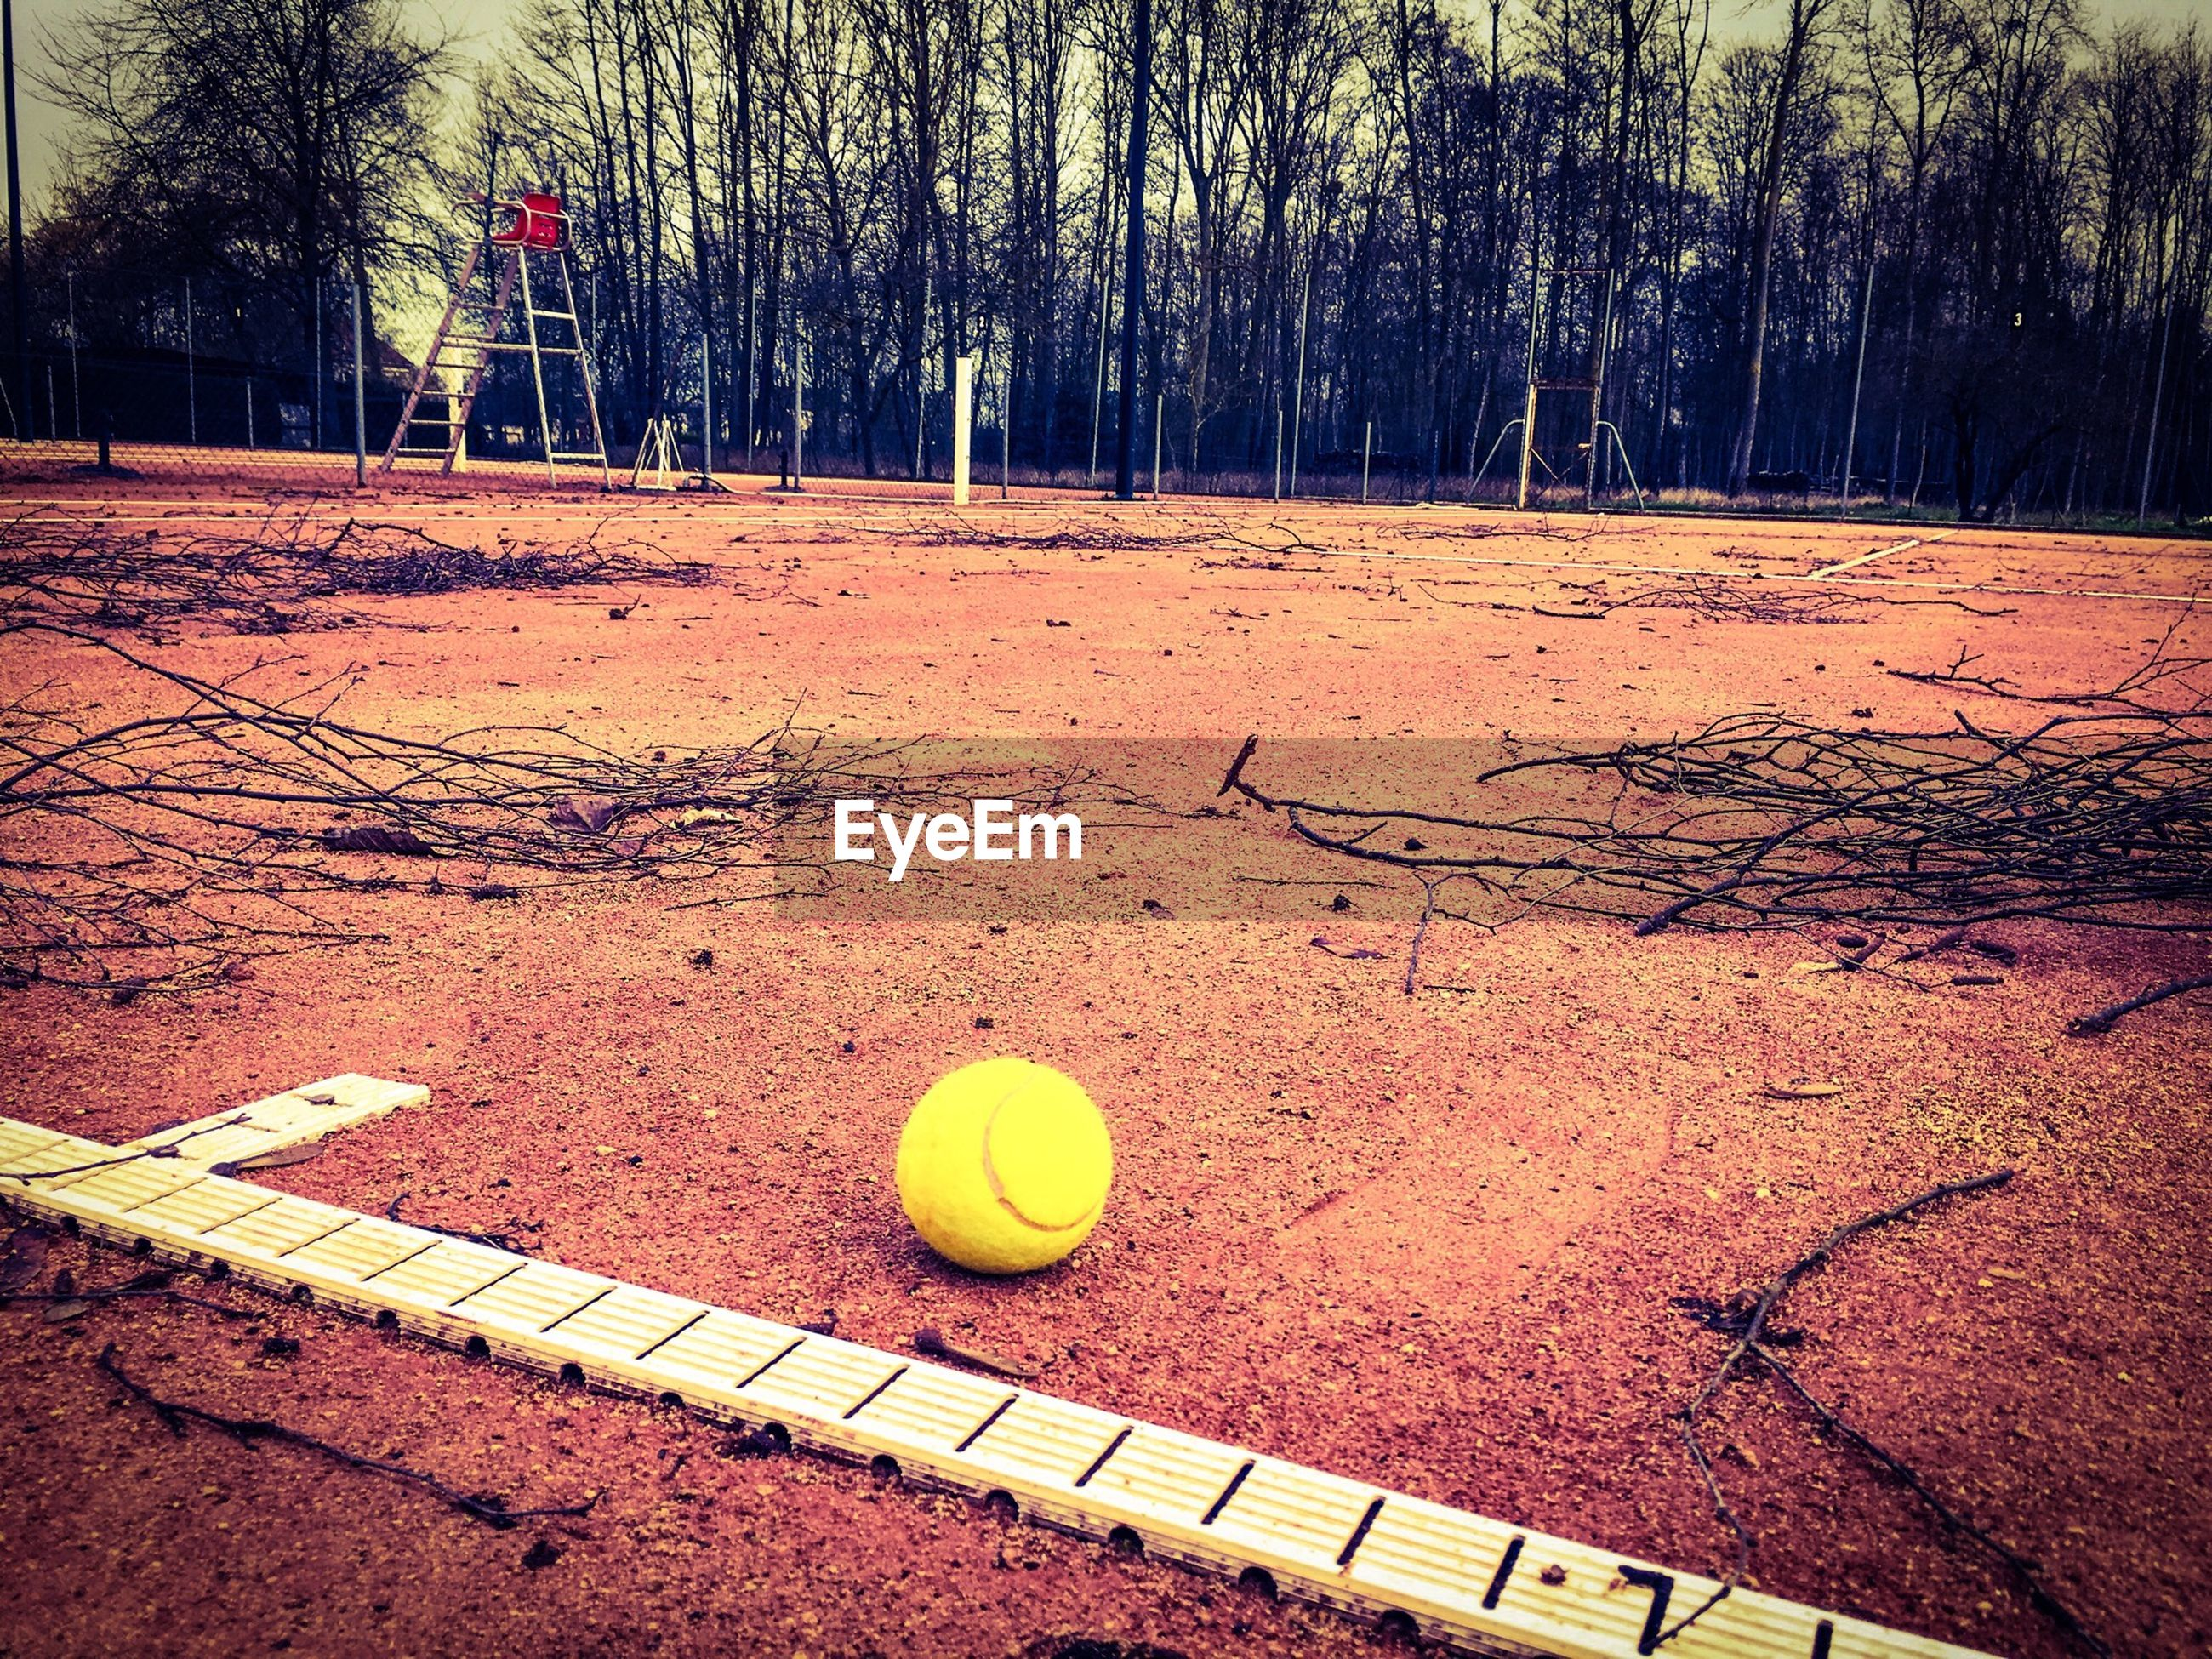 High angle view of tennis ball on field